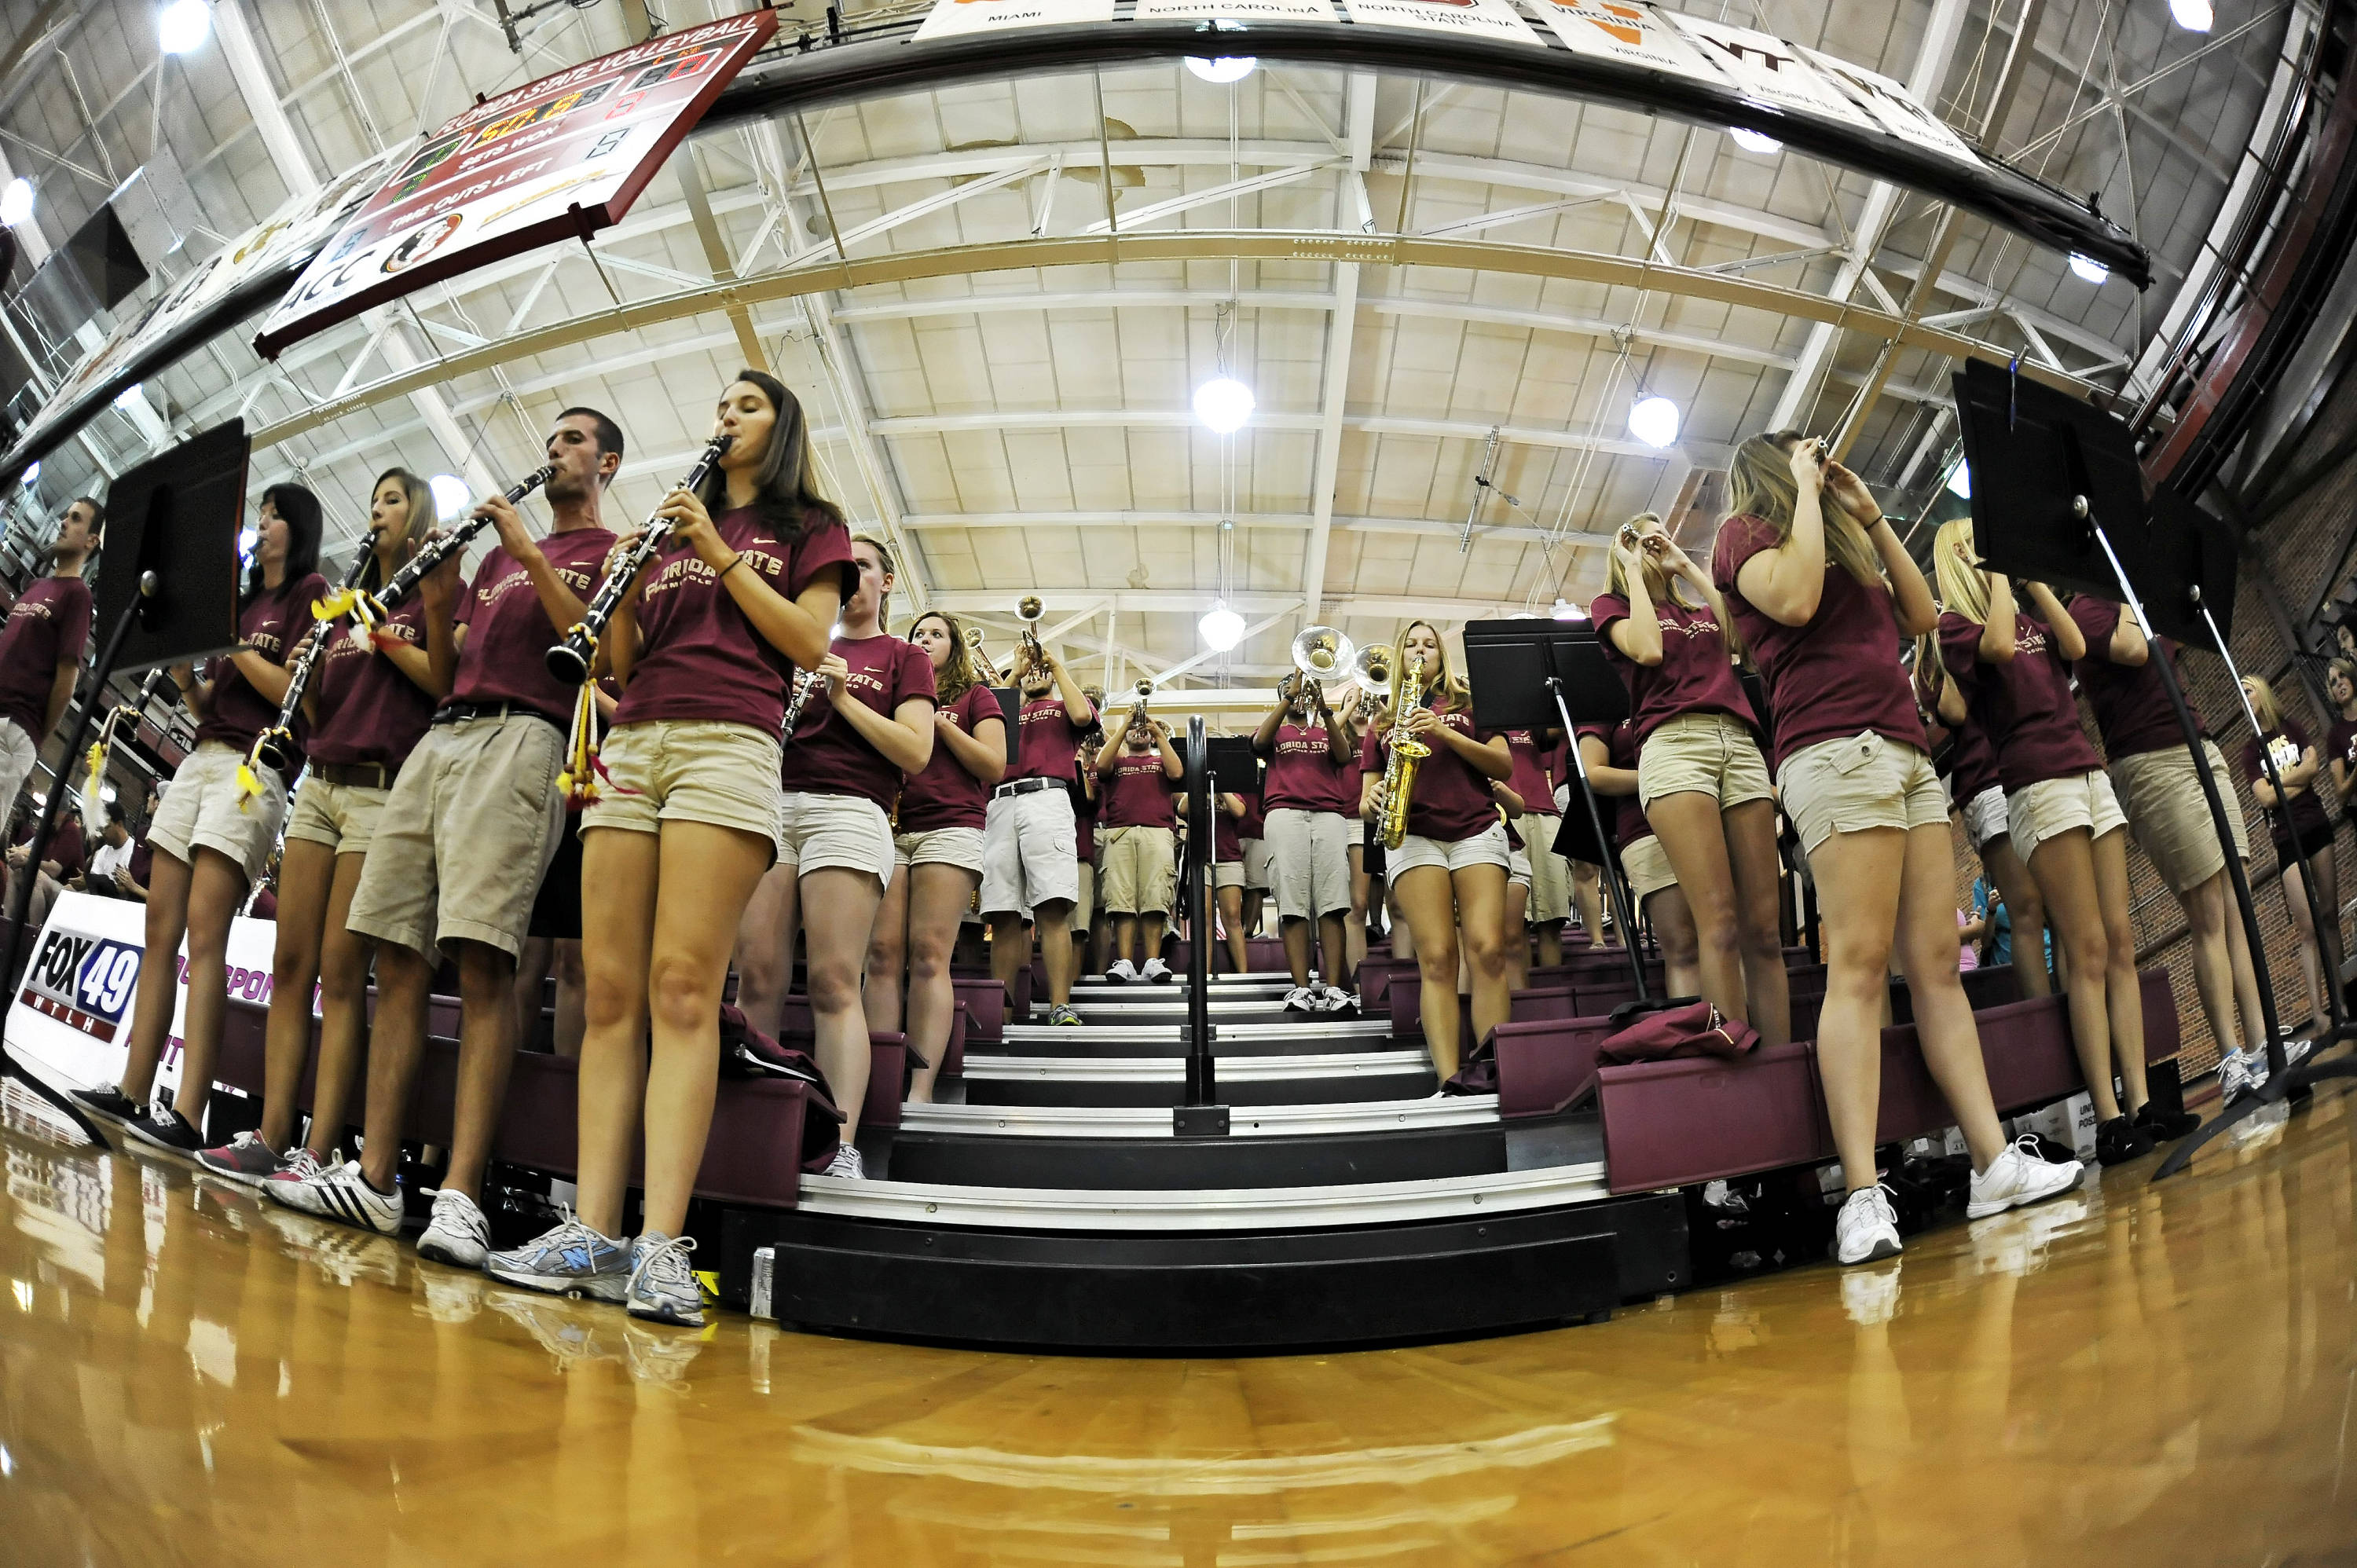 The Florida State band plays a tune